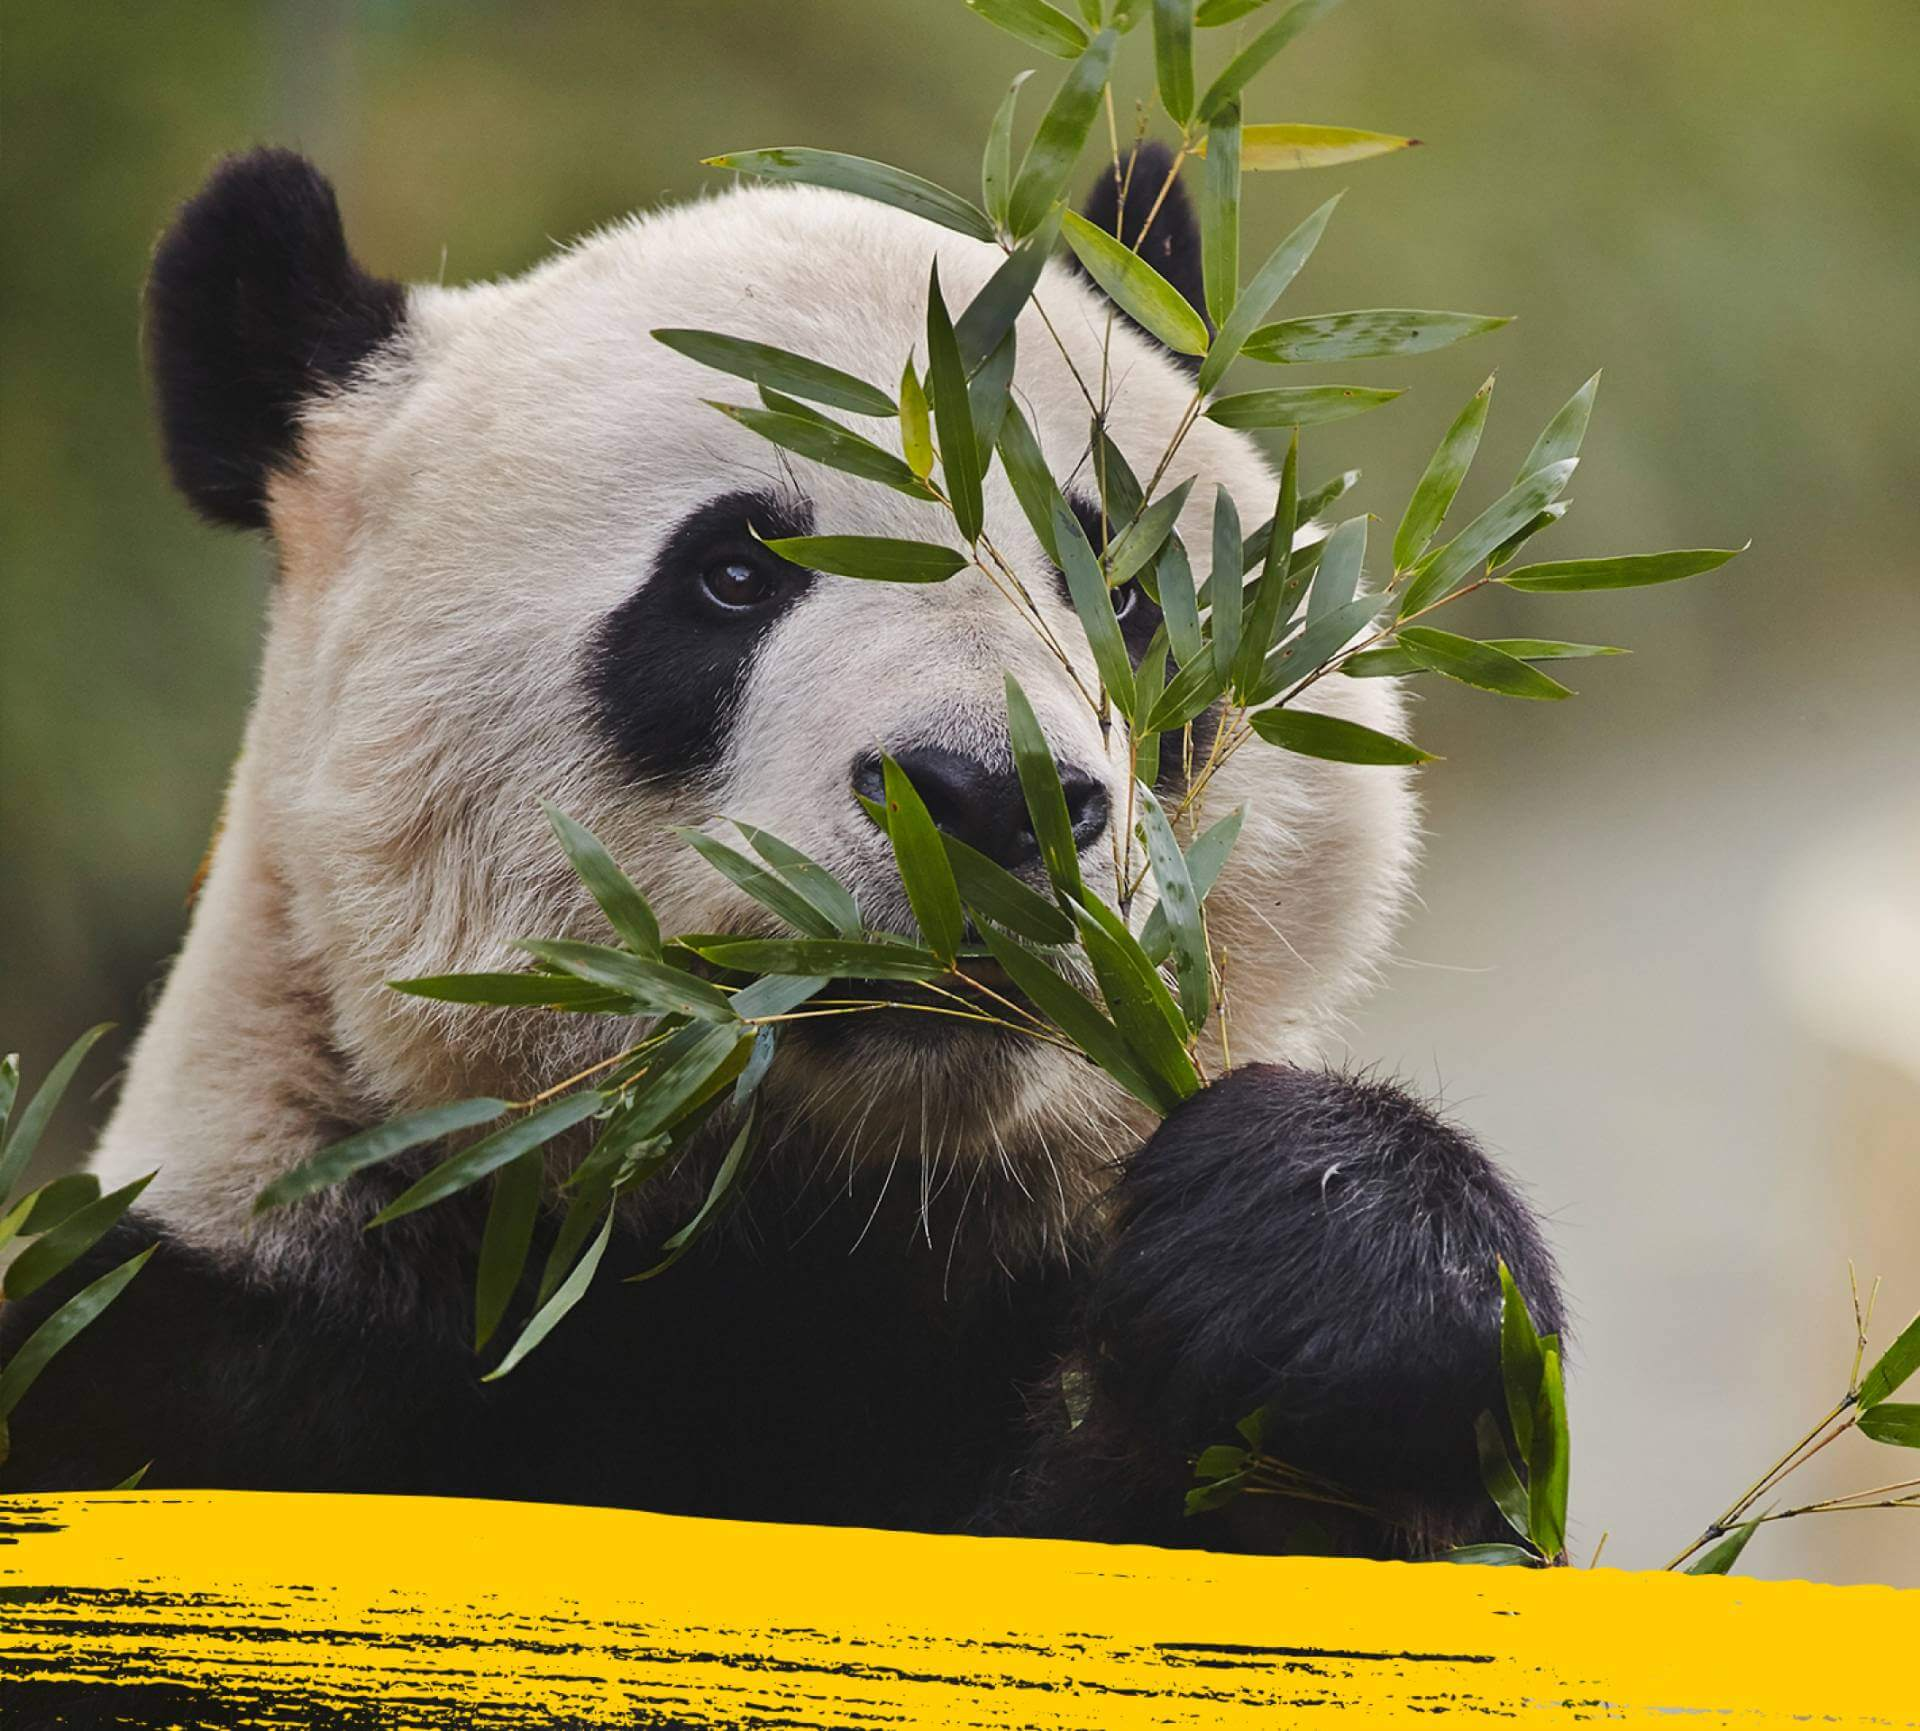 A giant panda munching on its favourite food bamboo.